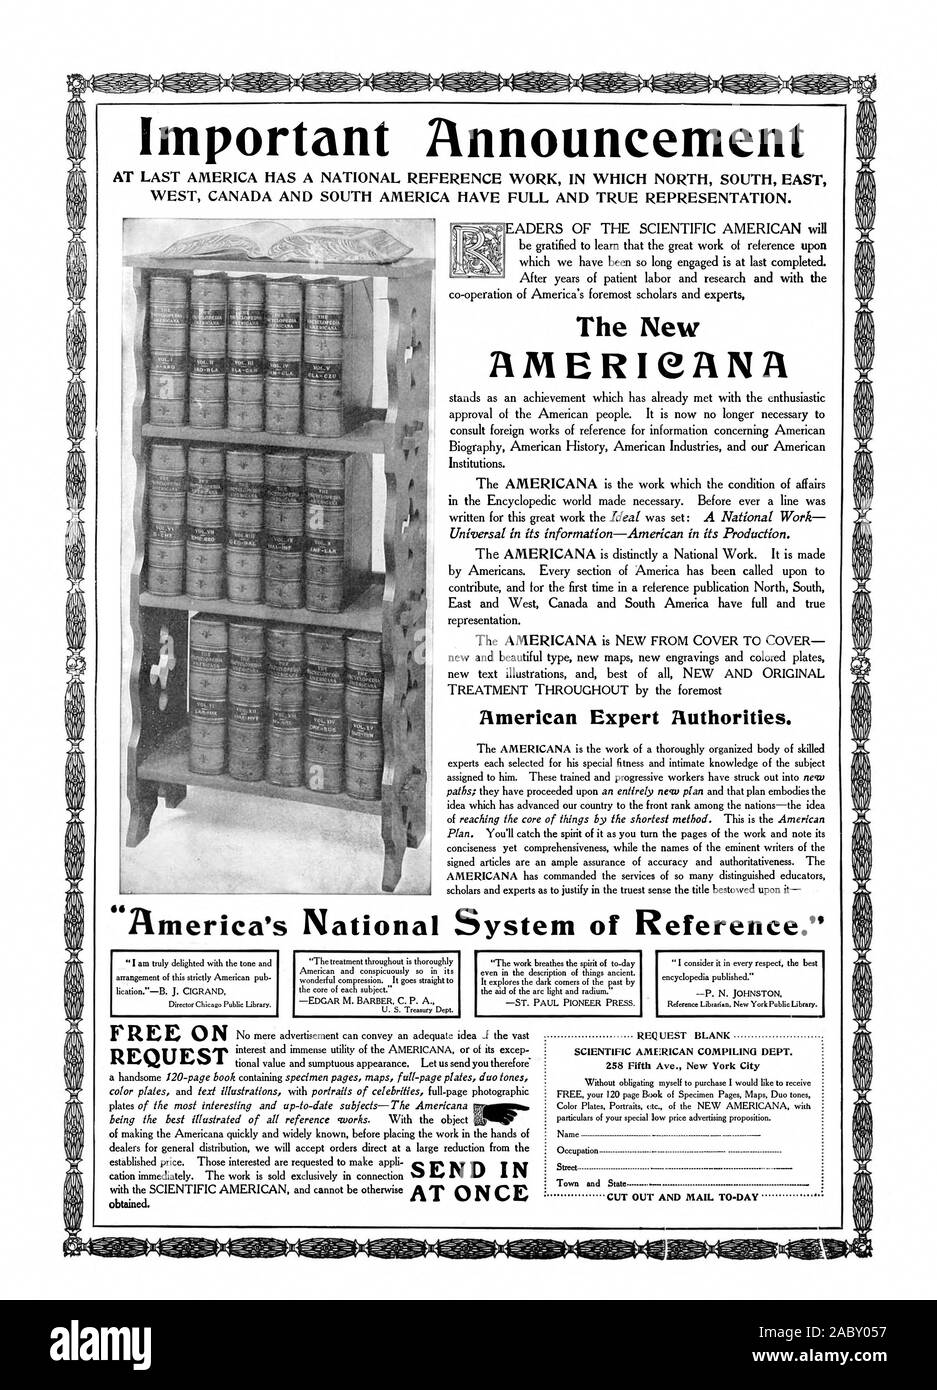 AT LAST AMERICA HAS A NATIONAL REFERENCE WORK IN WHICH NORTH ...